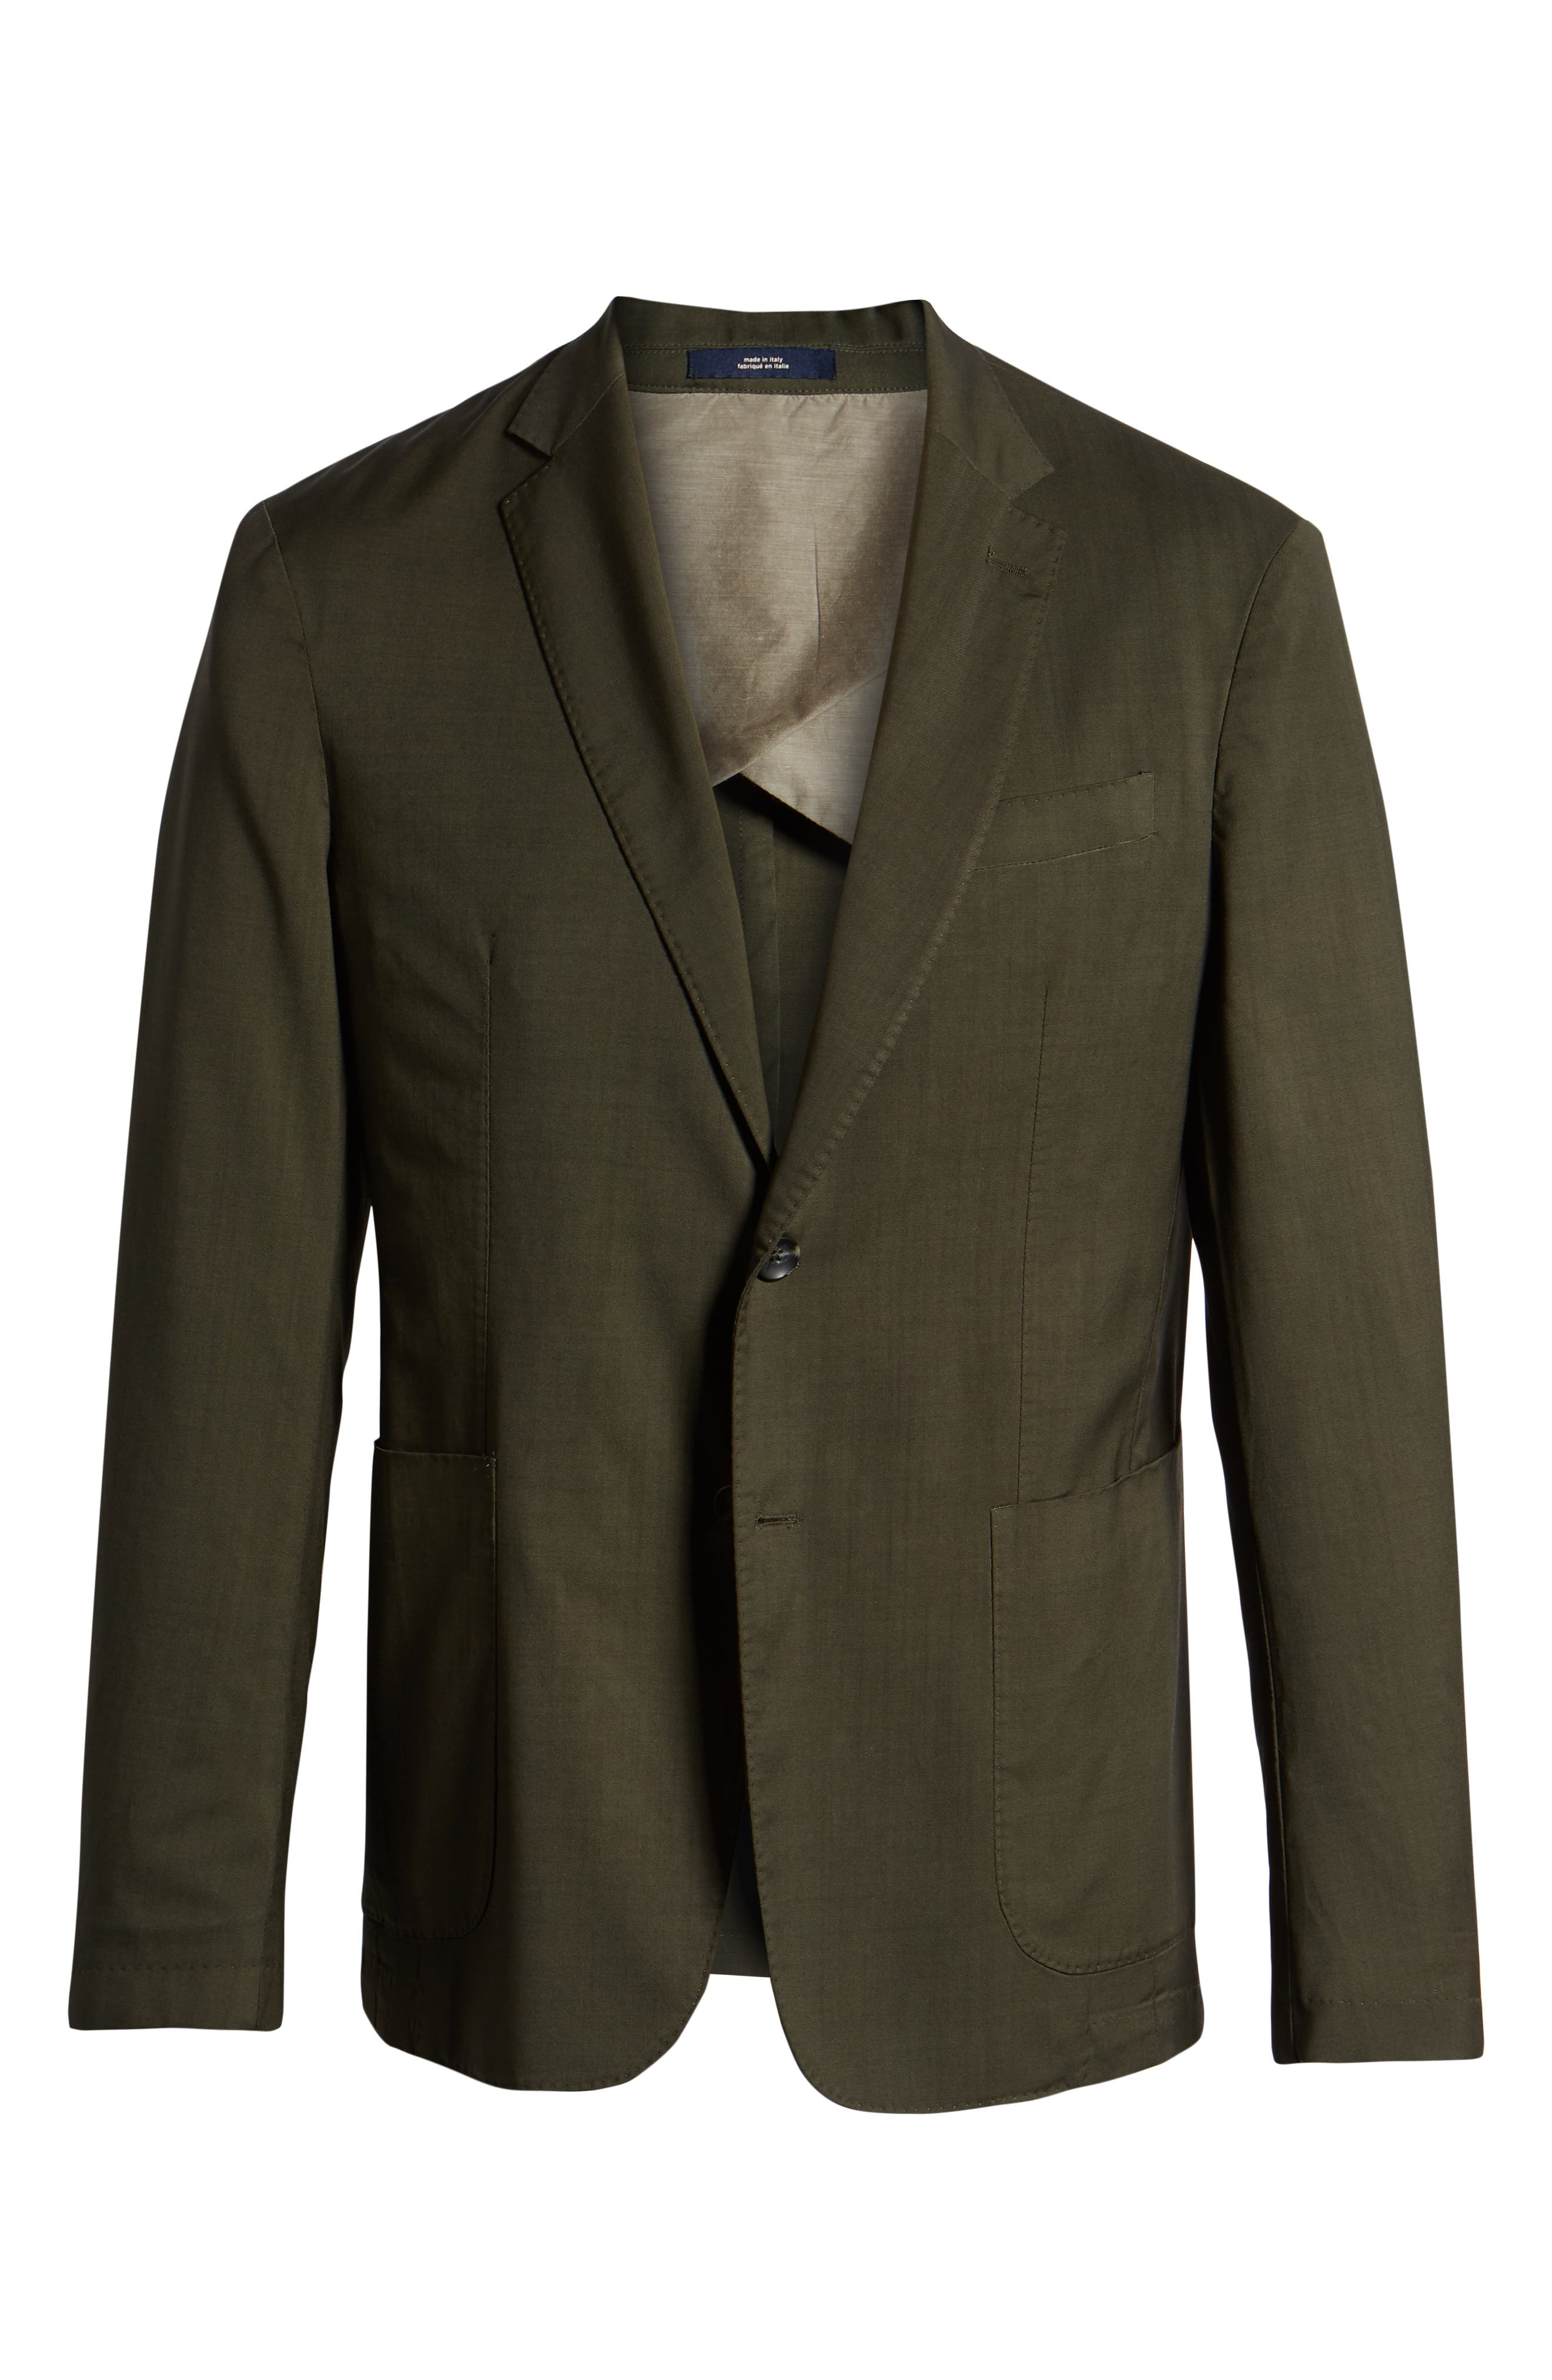 Extra Trim Fit Garment Dyed Wool Sport Coat,                             Alternate thumbnail 5, color,                             OLIVE